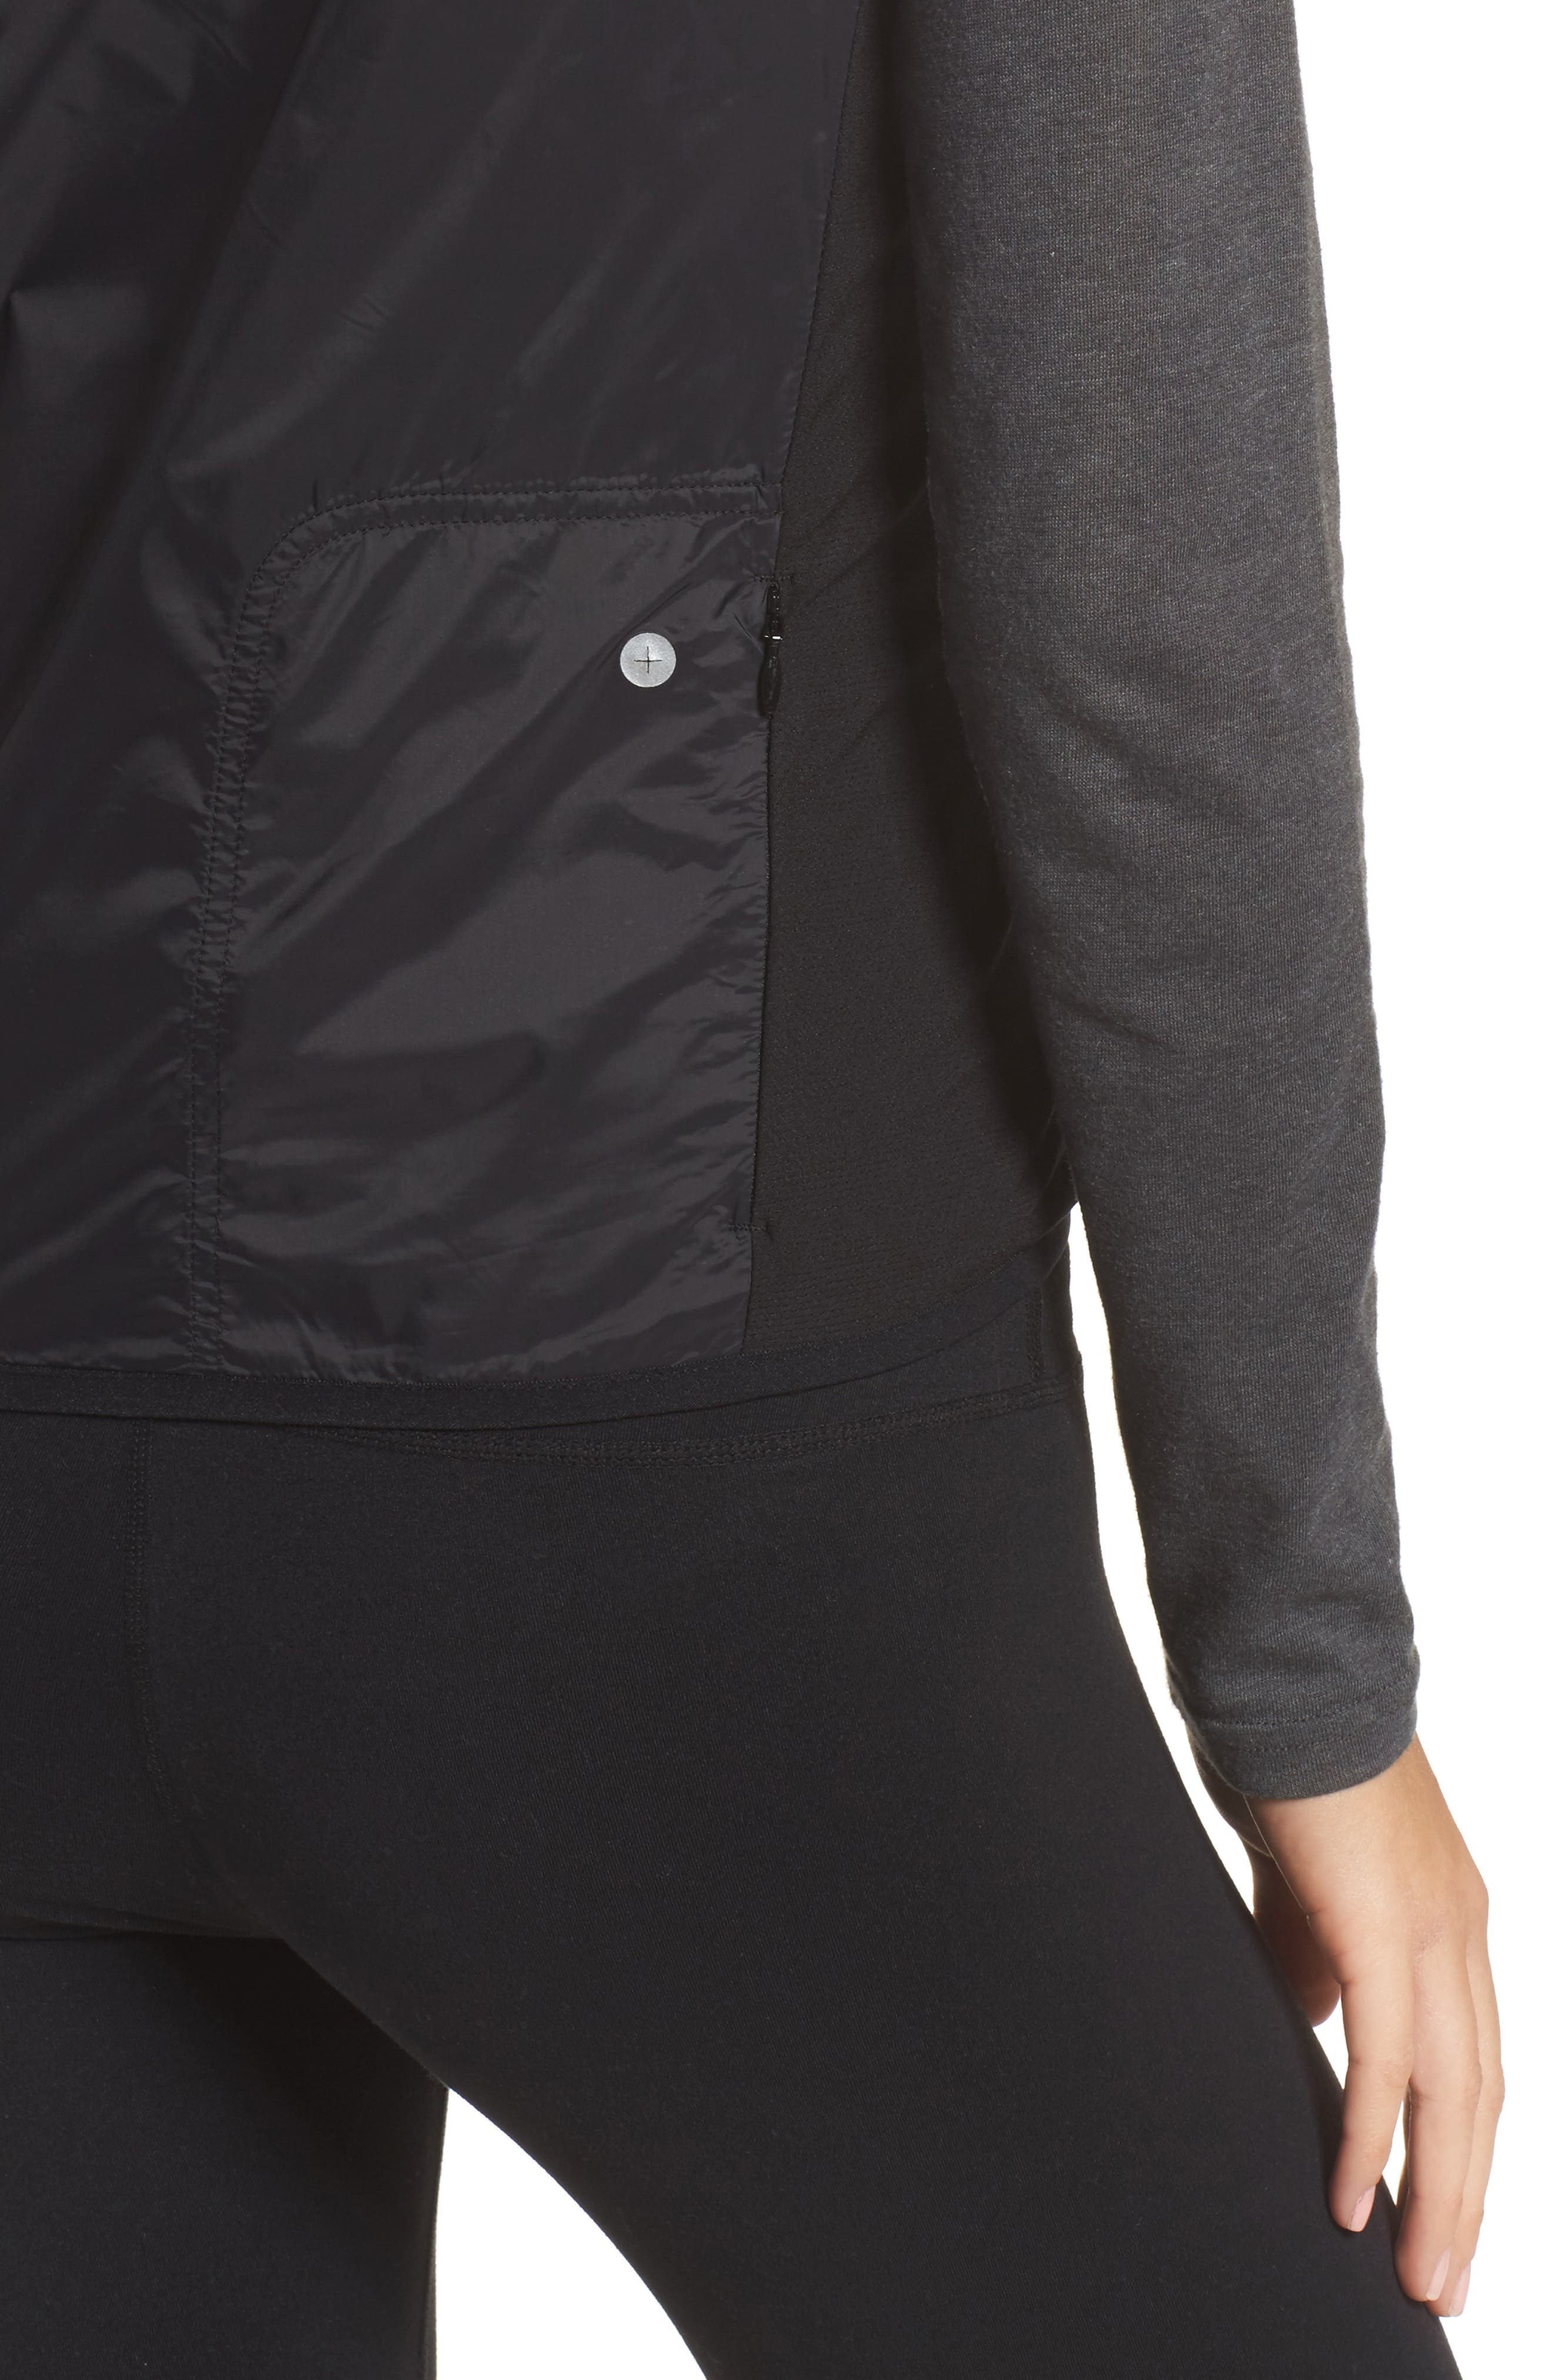 Brecon Beacons Water-Resistant & Windproof Insulated 2-in-1 Jacket,                             Alternate thumbnail 5, color,                             Black